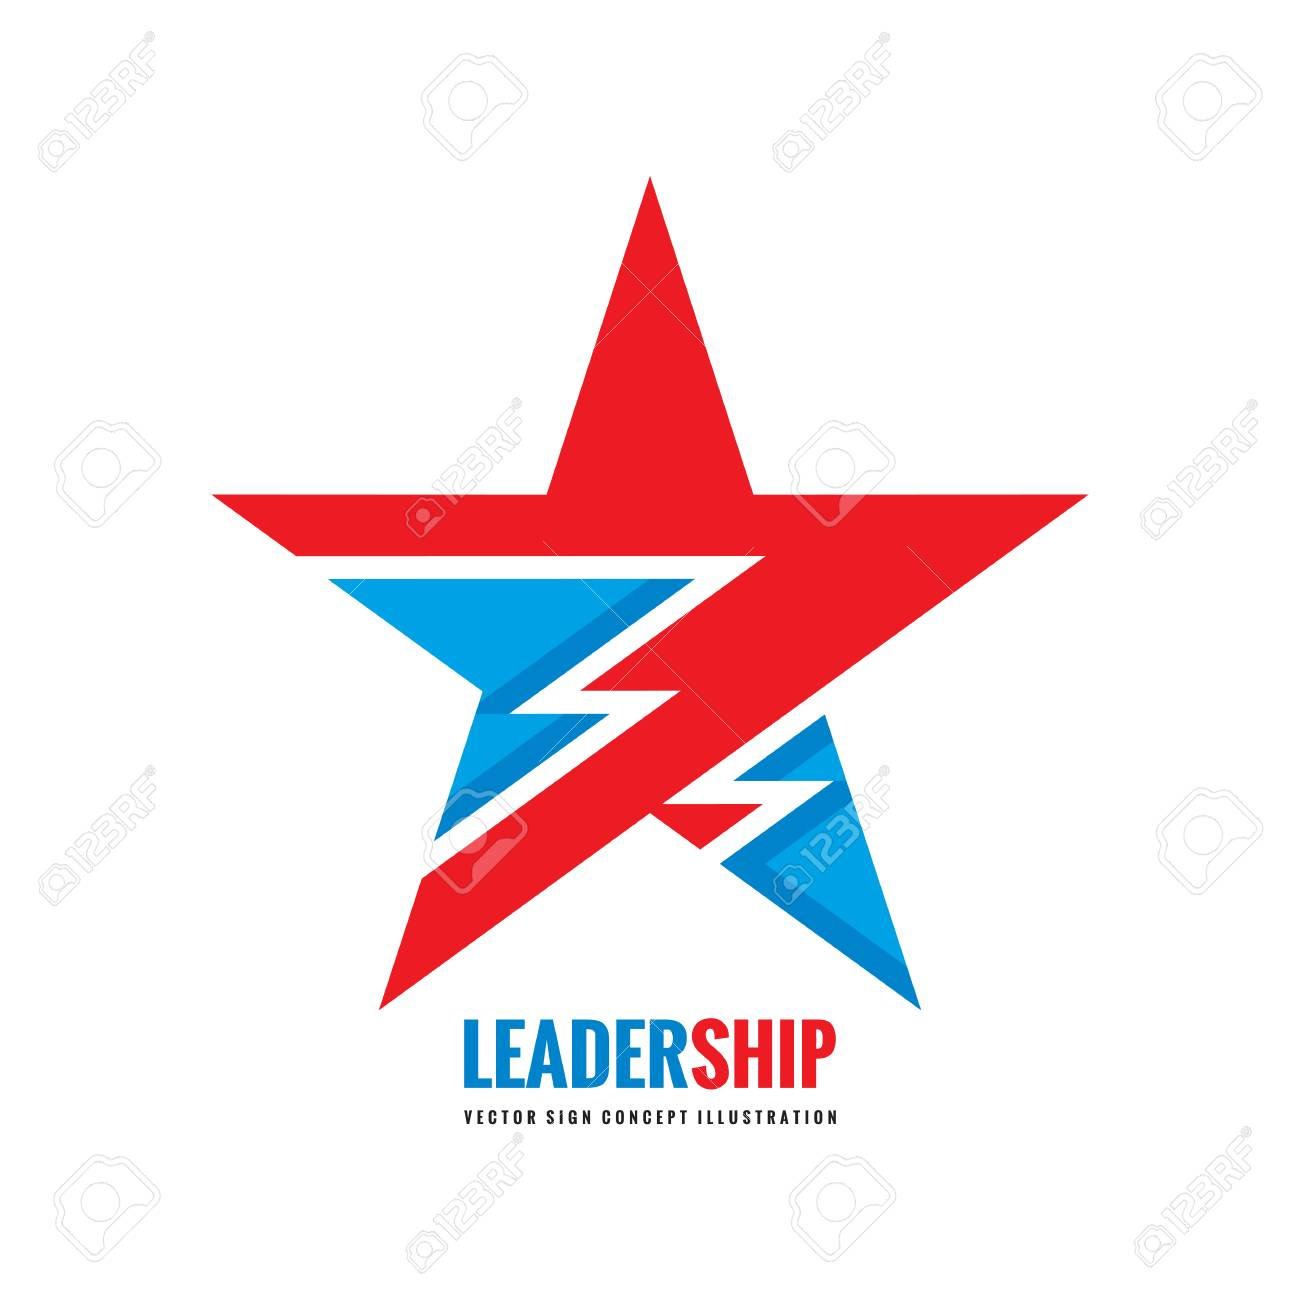 Star Vector Logo Template Concept Illustration Leadership